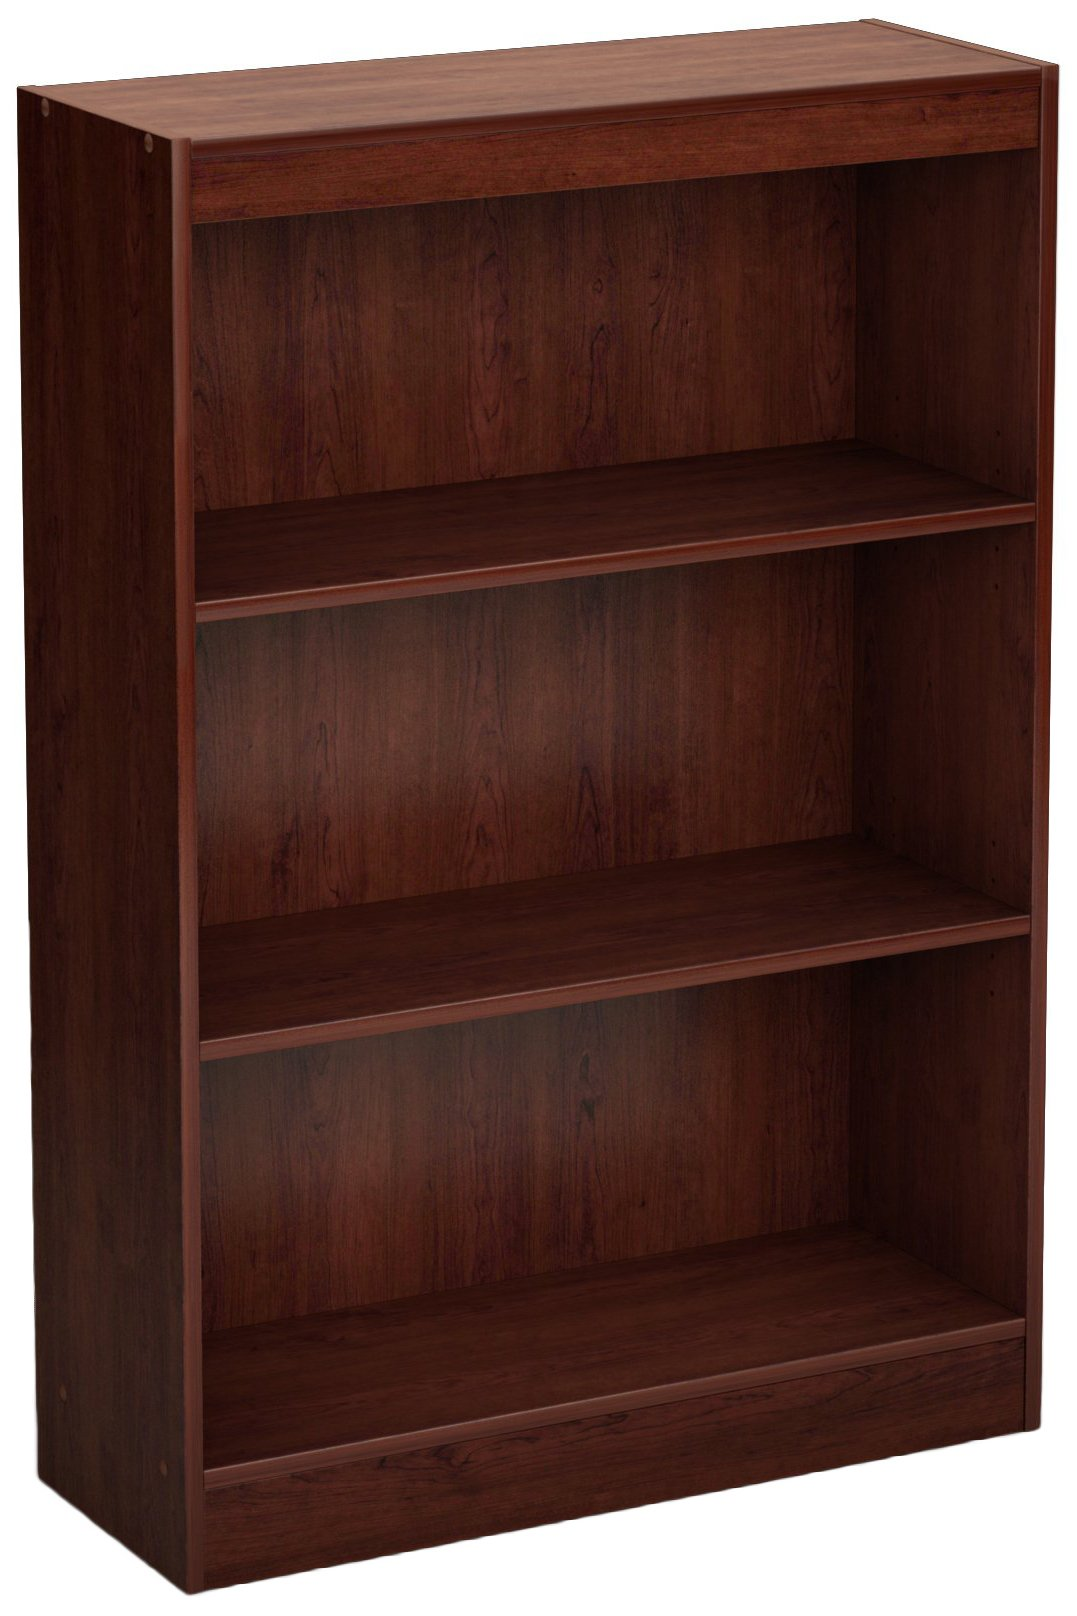 South Shore 3-Shelf Storage Bookcase, Royal Cherry